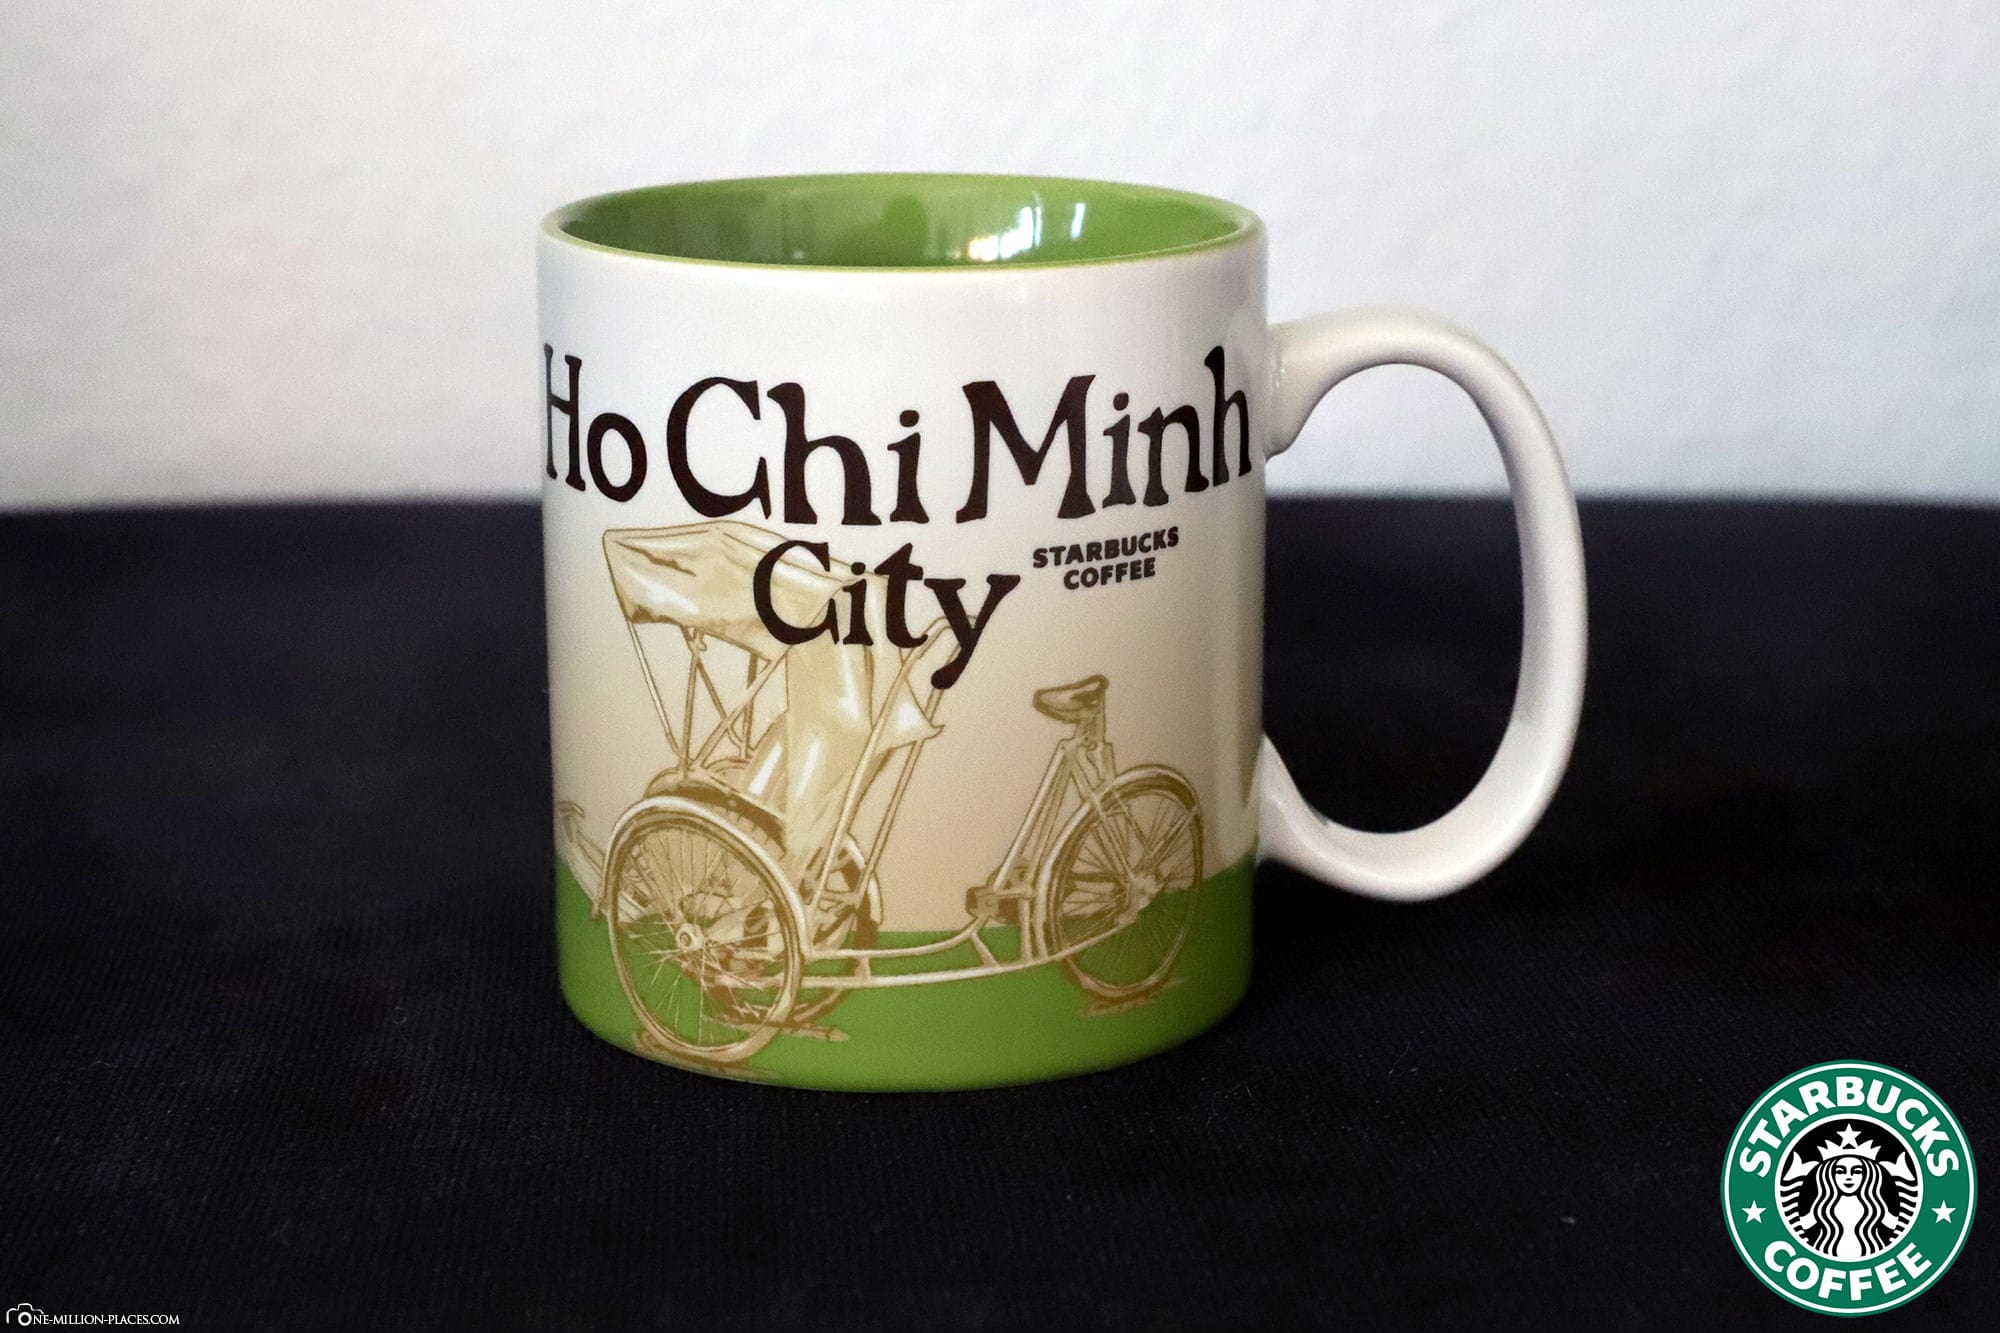 Ho Chi Minh City, Starbucks Cup, Global Icon Series, City Mugs, Collection, Vietnam, Travelreport